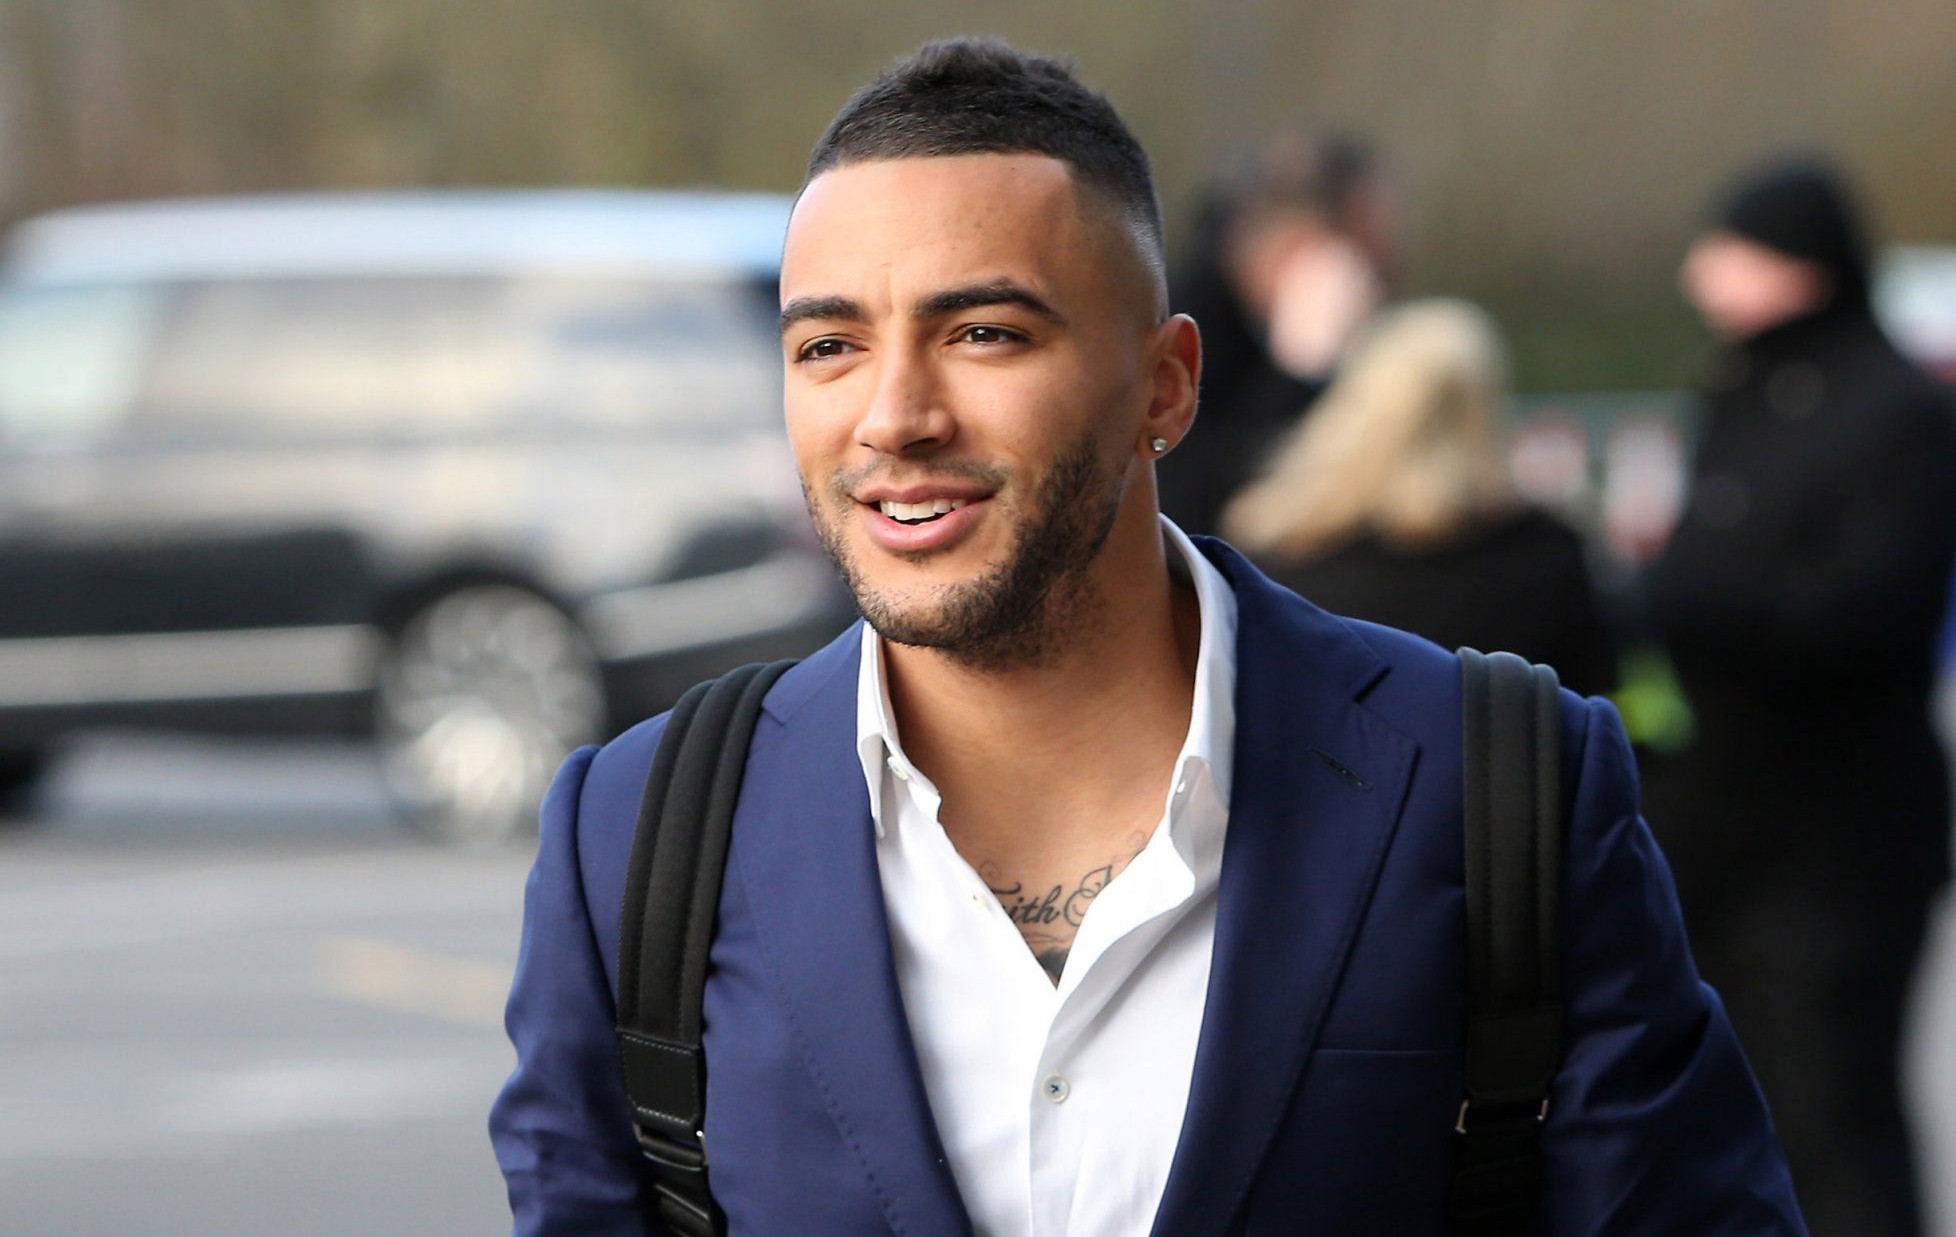 LEICESTER, ENGLAND - FEBRUARY 02 : Danny Simpson arrives at King Power Stadium ahead of the Barclays Premier League match between Leicester City and Liverpool at the King Power Stadium on February 02 , 2016 in Leicester, United Kingdom. (Photo by Plumb Images/Leicester City FC via Getty Images)